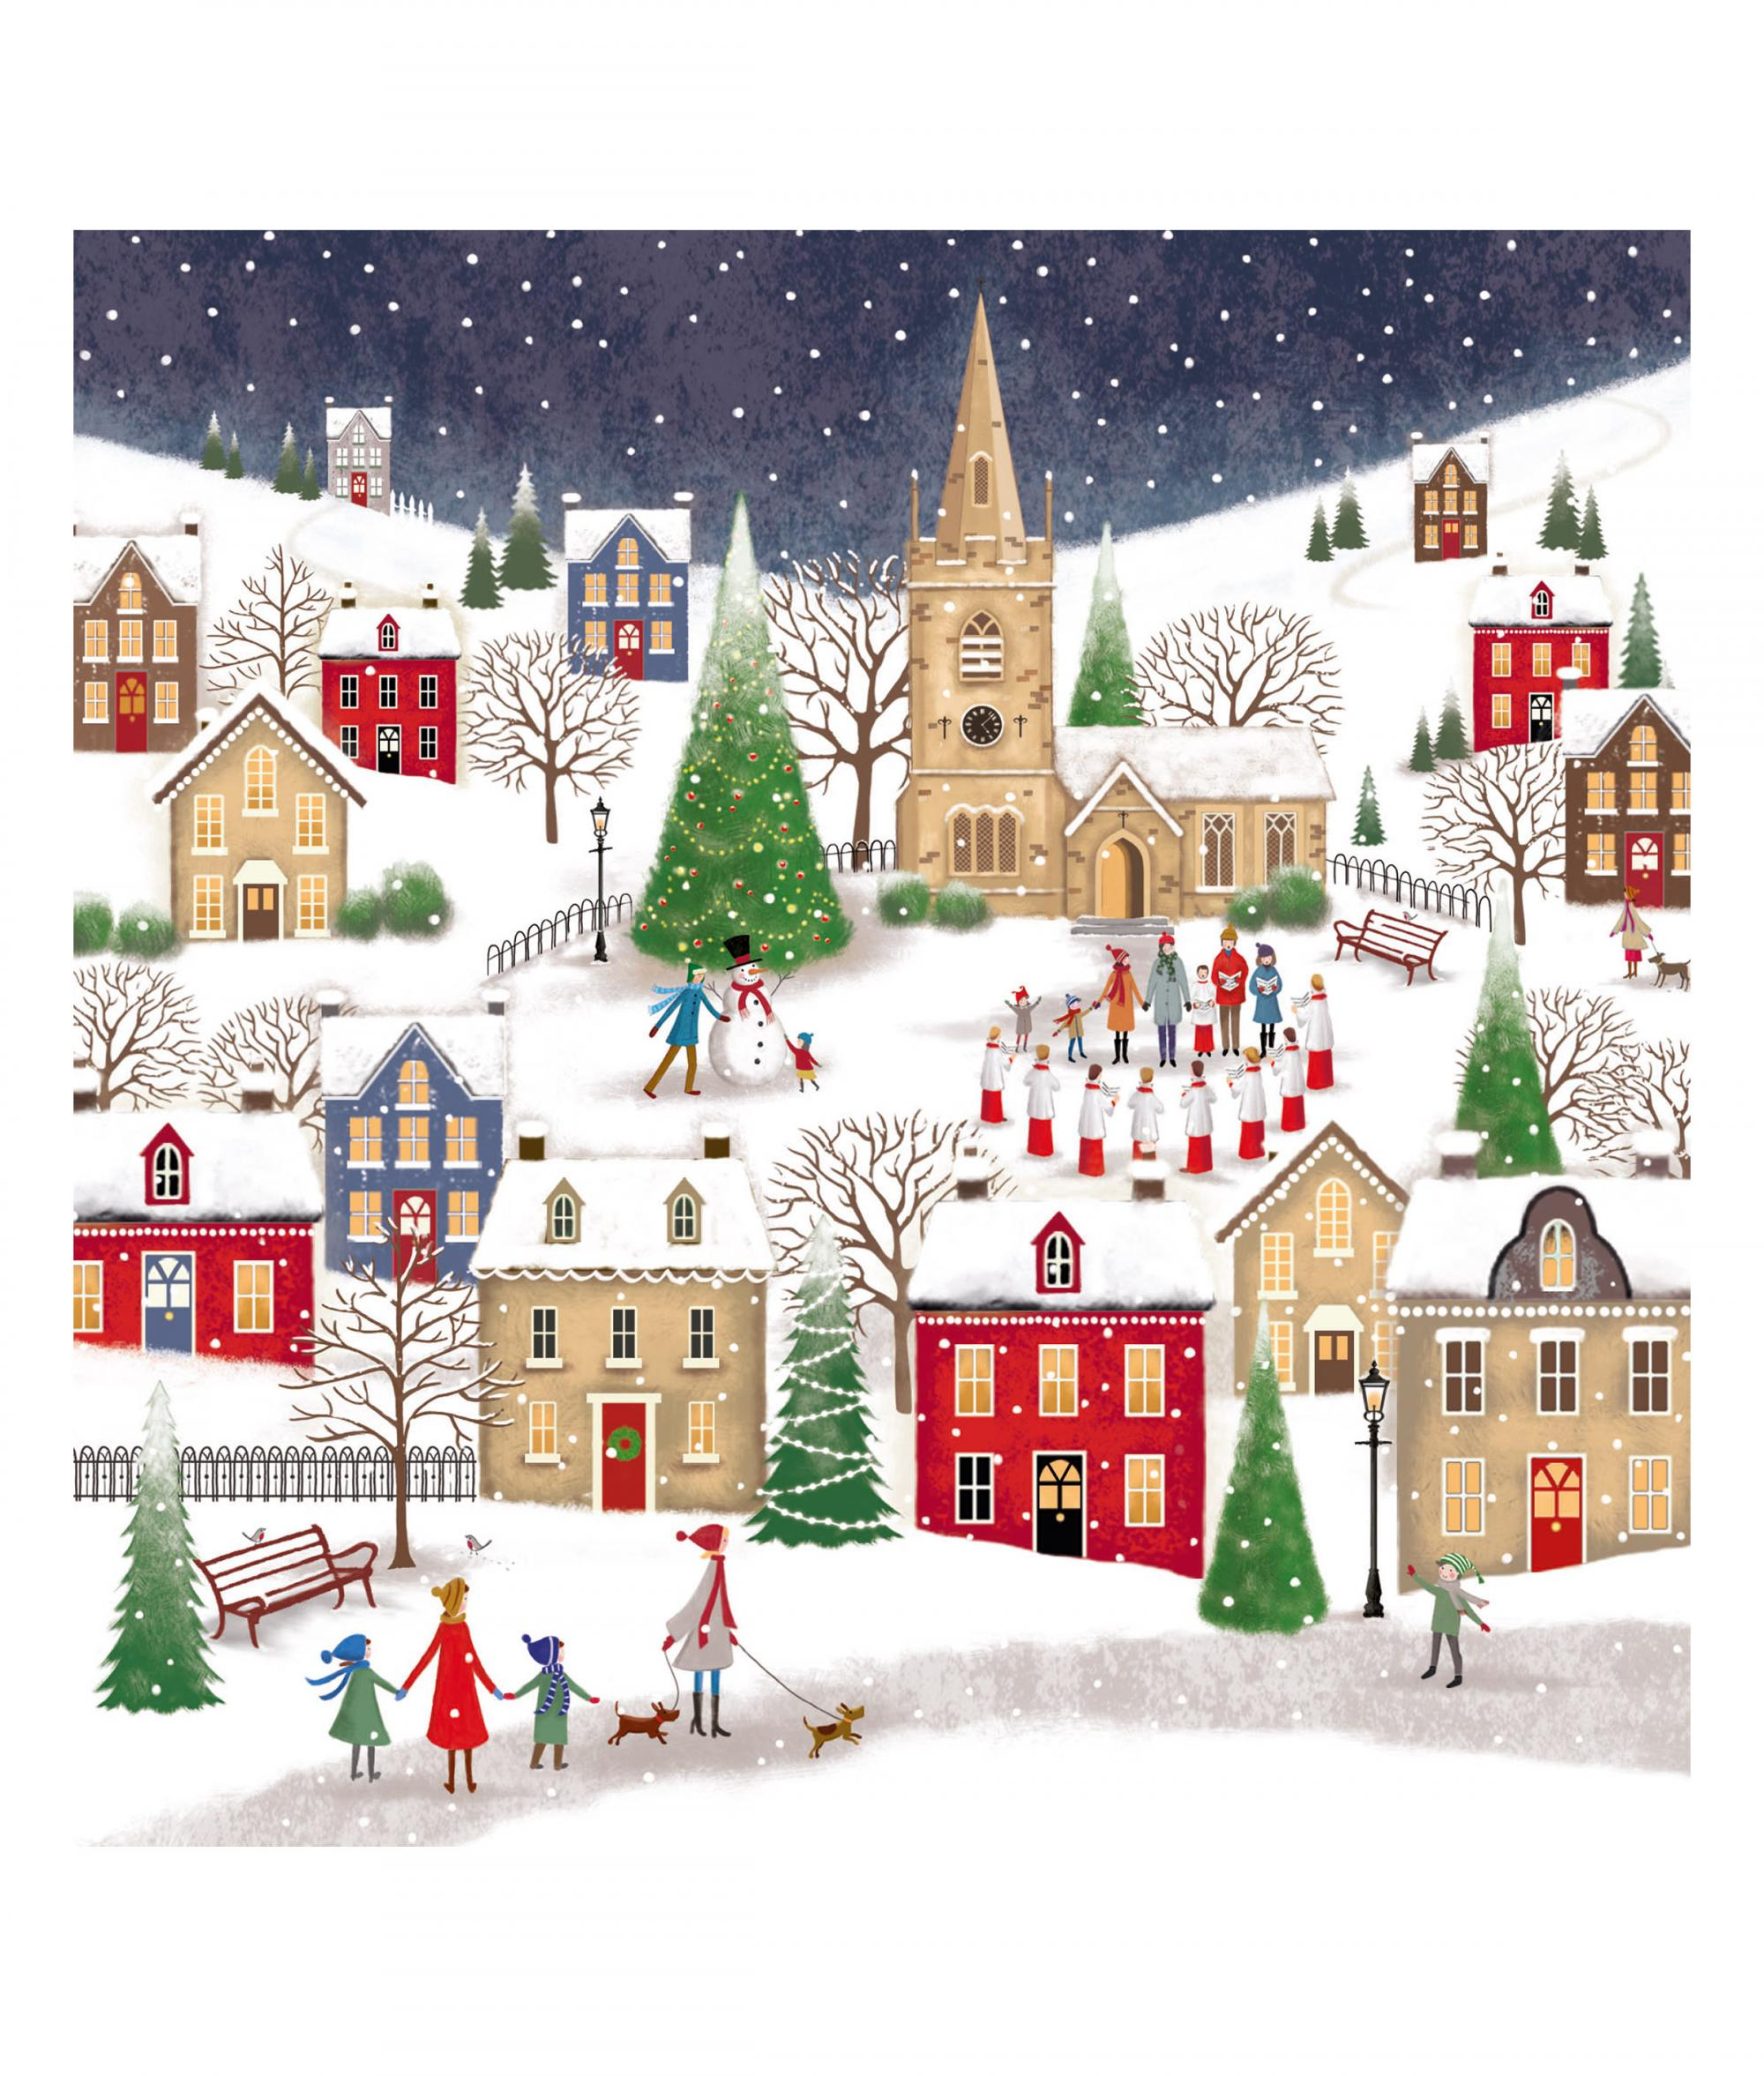 Village at Christmas Card - Pack of 10 | Cancer Research UK Online Shop